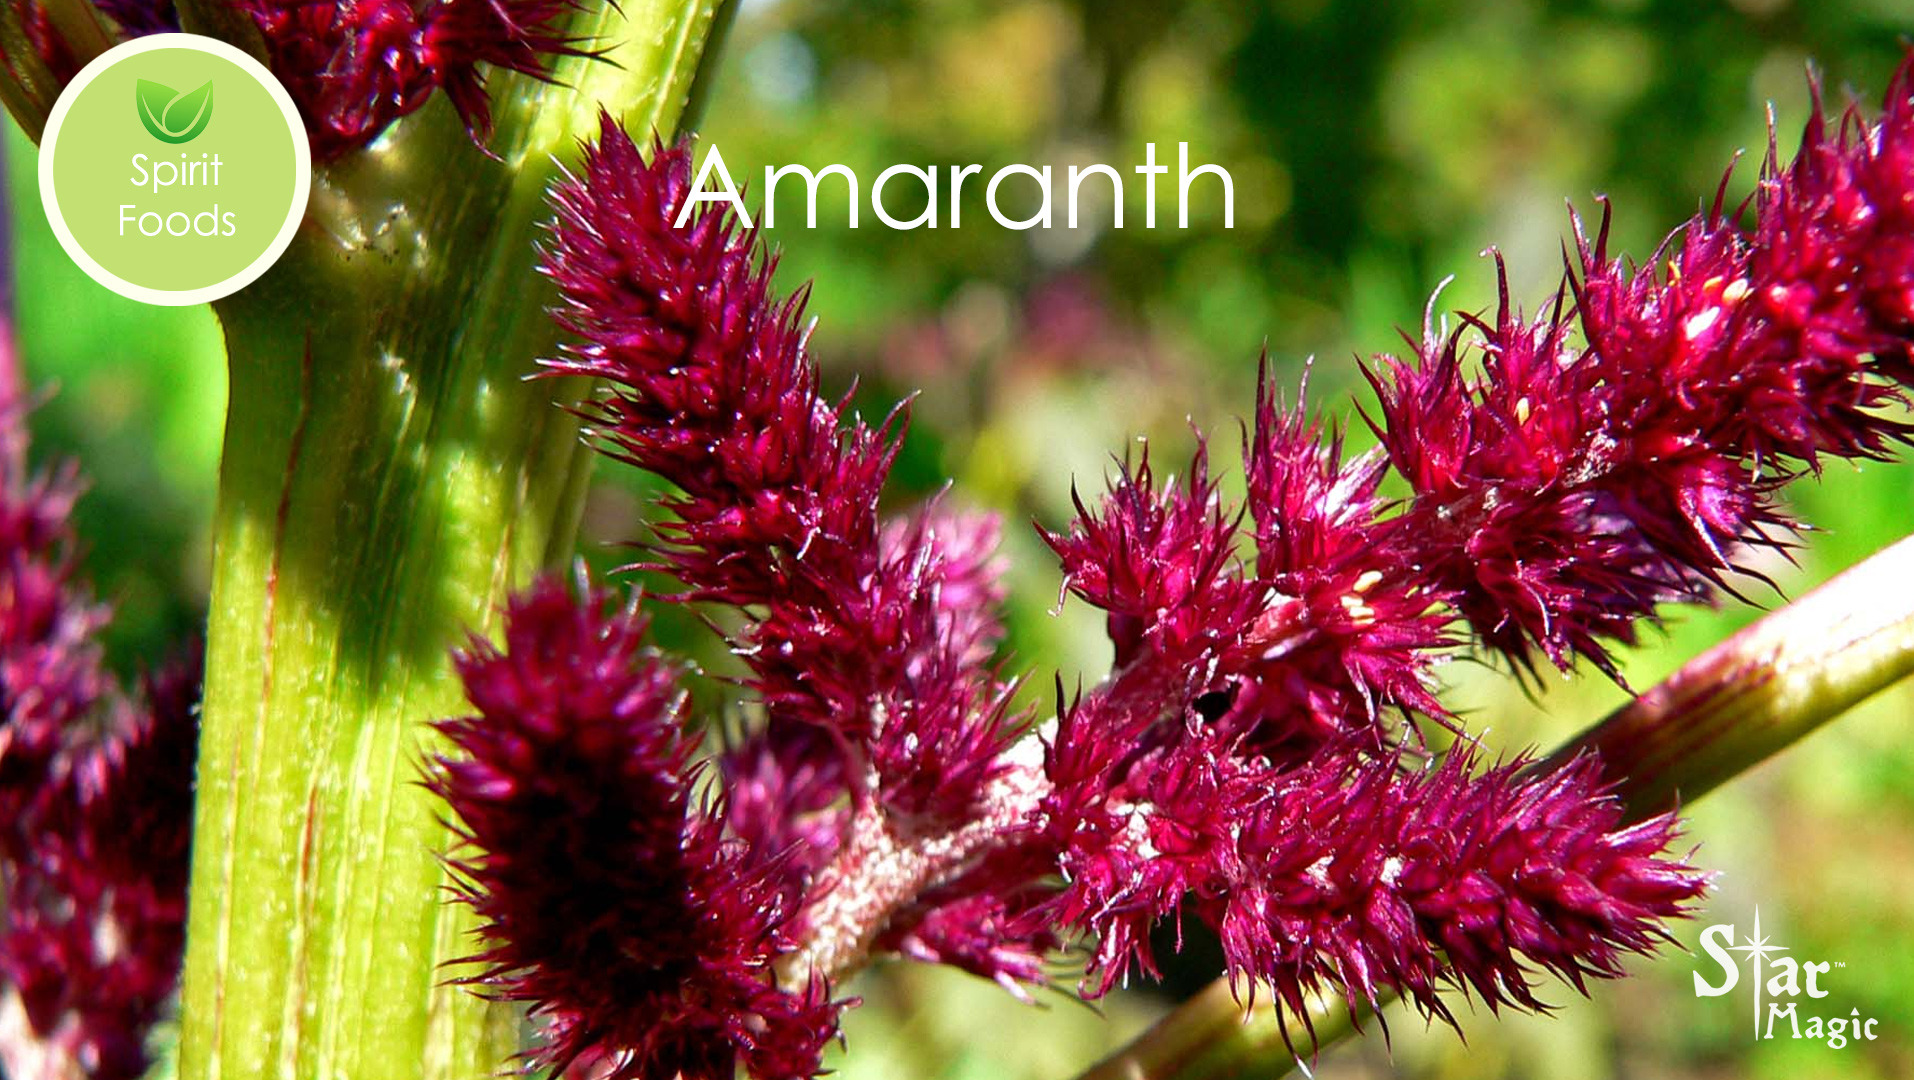 Spirit Food – Amaranth